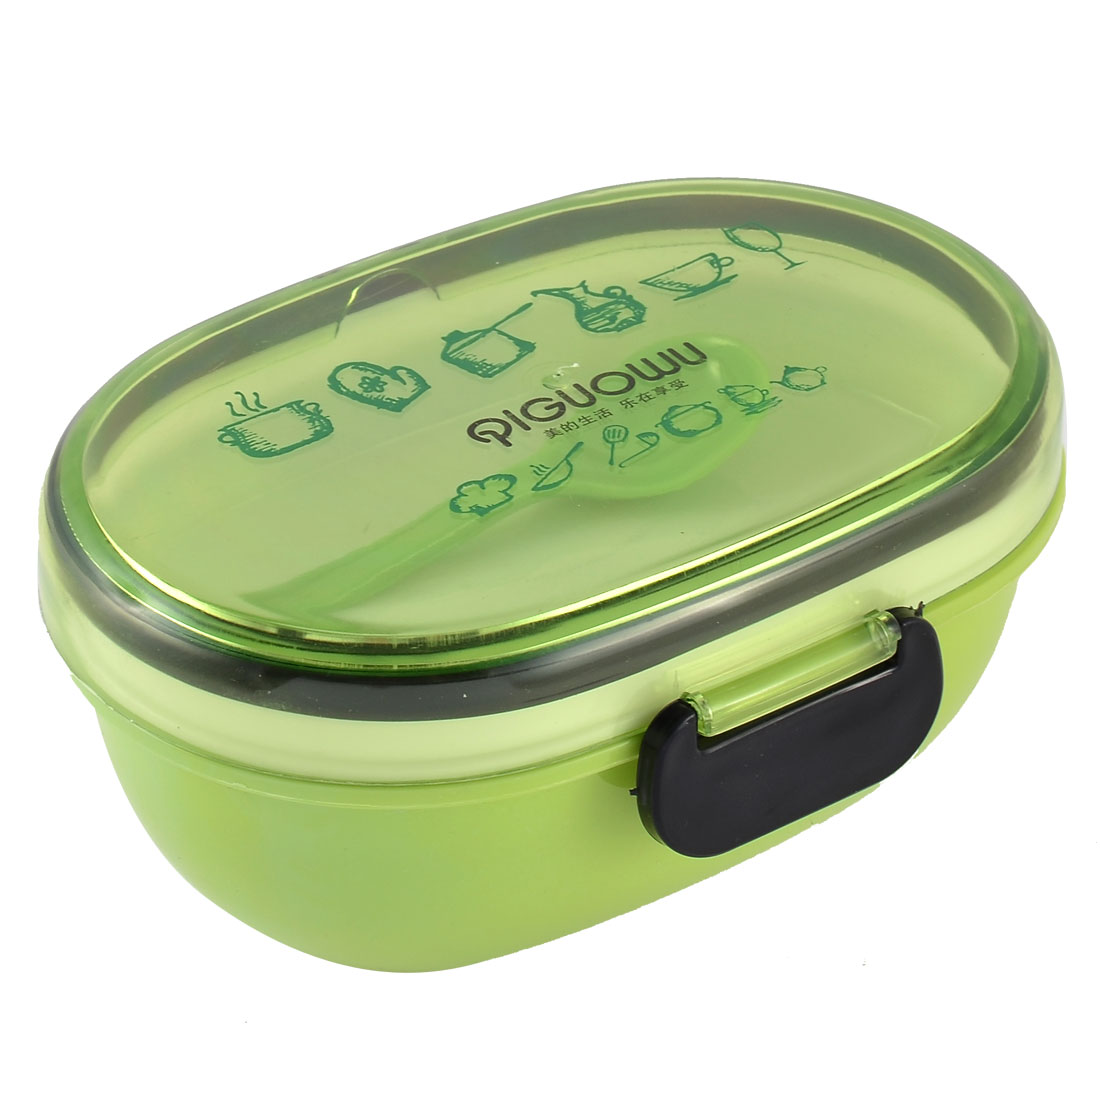 Tableware Oval Shaped Plastic Double Layer Lunch Sushi Food Box Bowl Bento Container Lime Green